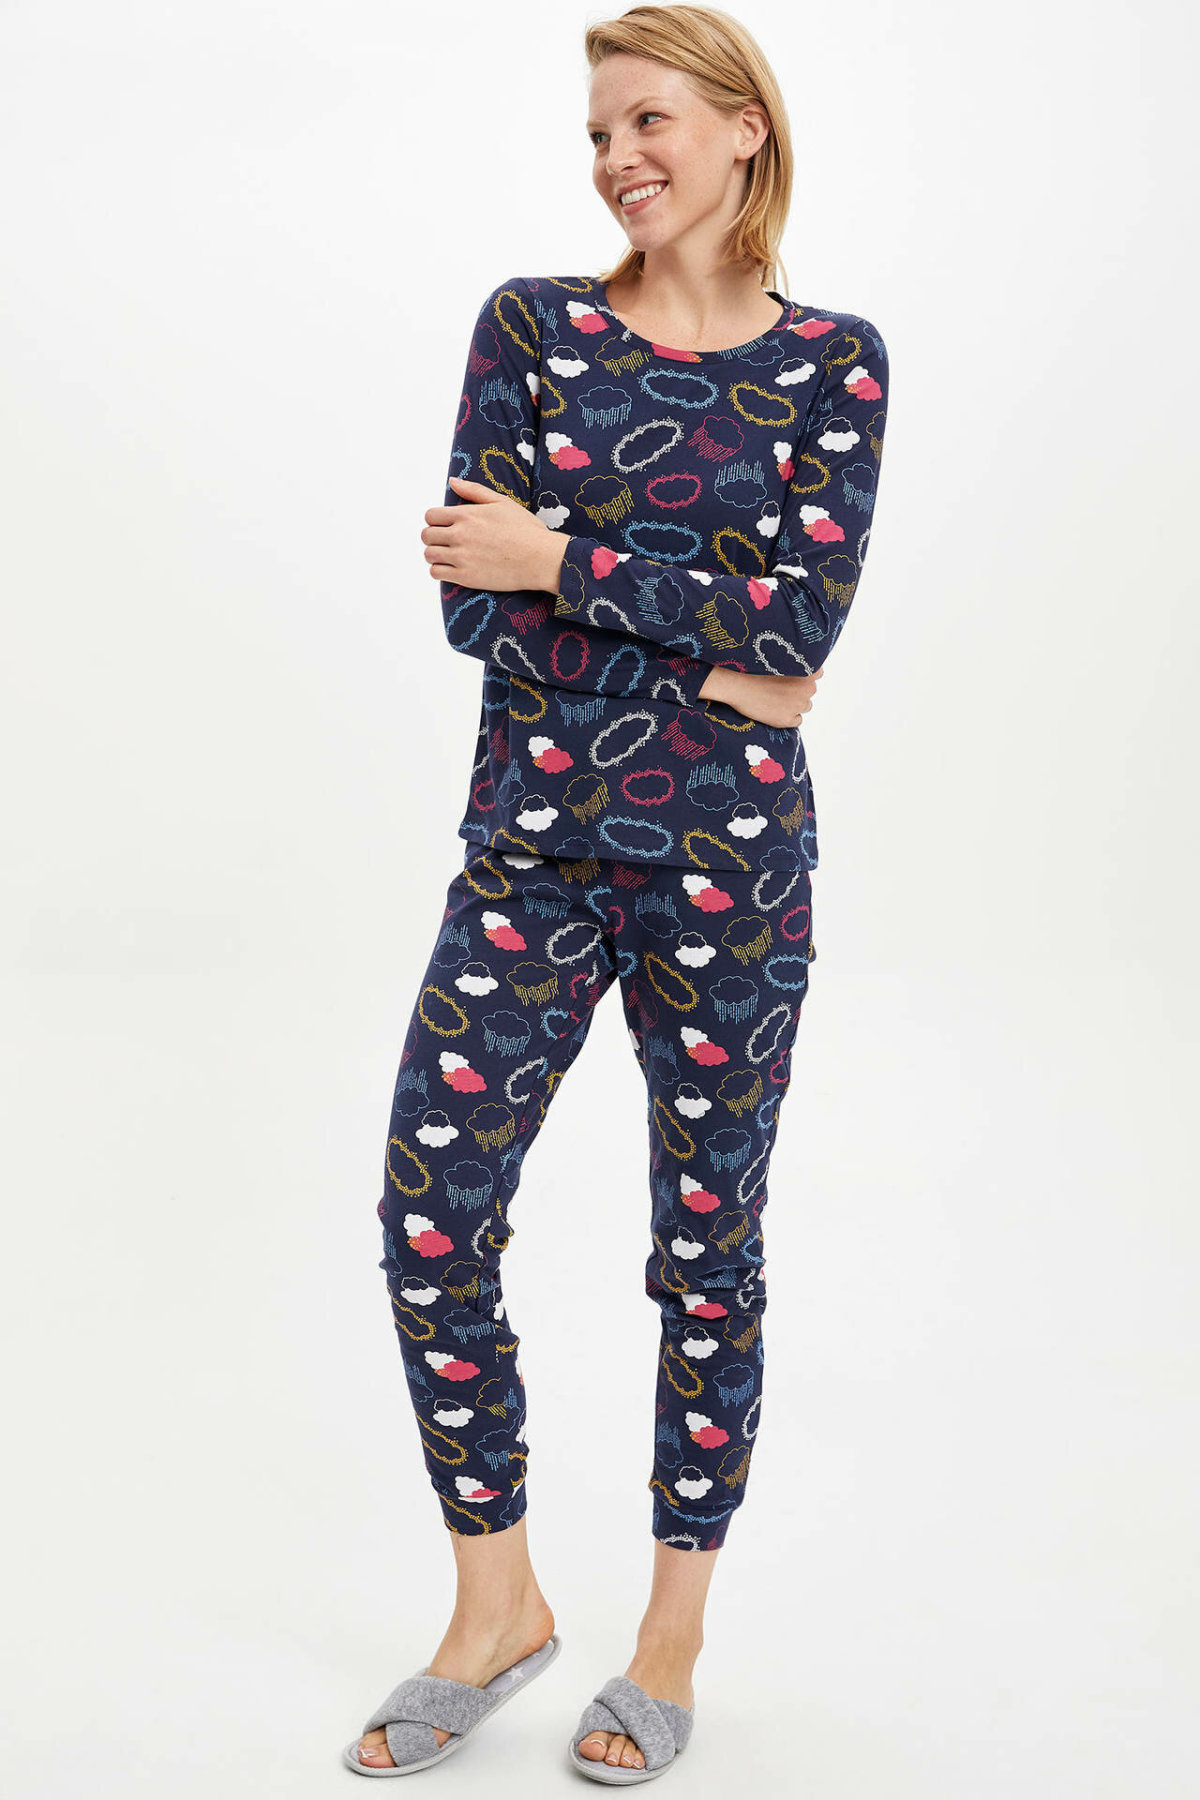 Defacto Pajamas Homewear-Sets Knitted Cloud-Prints Comfort Woman Winter Casual Sets-M1908az19wn title=